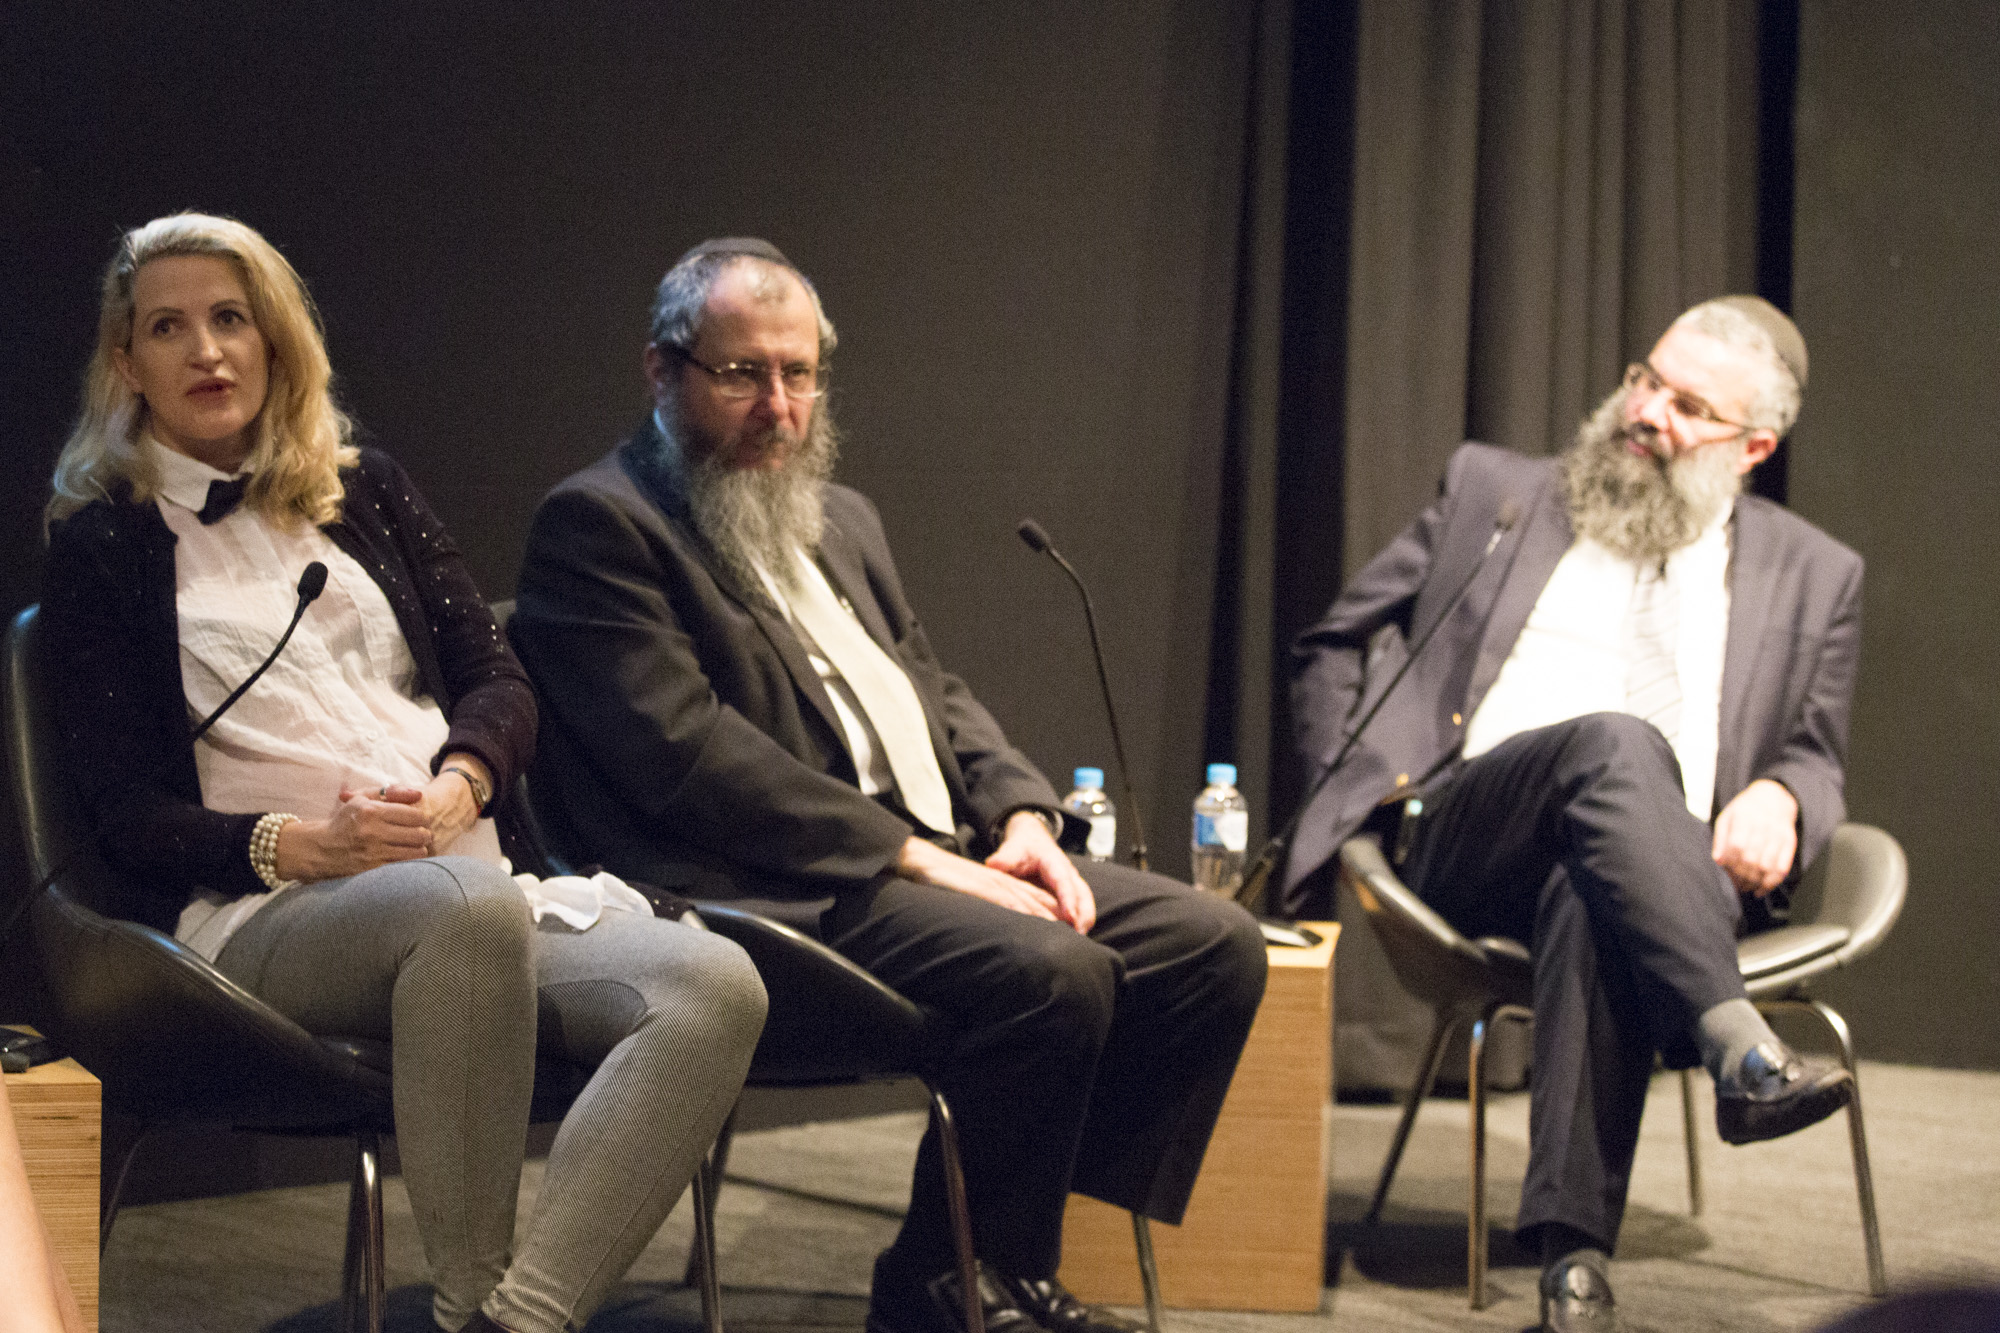 Photographer D-Mo Zajac in conversation with Rabbis Gourarie and Slavin, 10th March 2016, photograph by Joy Lai